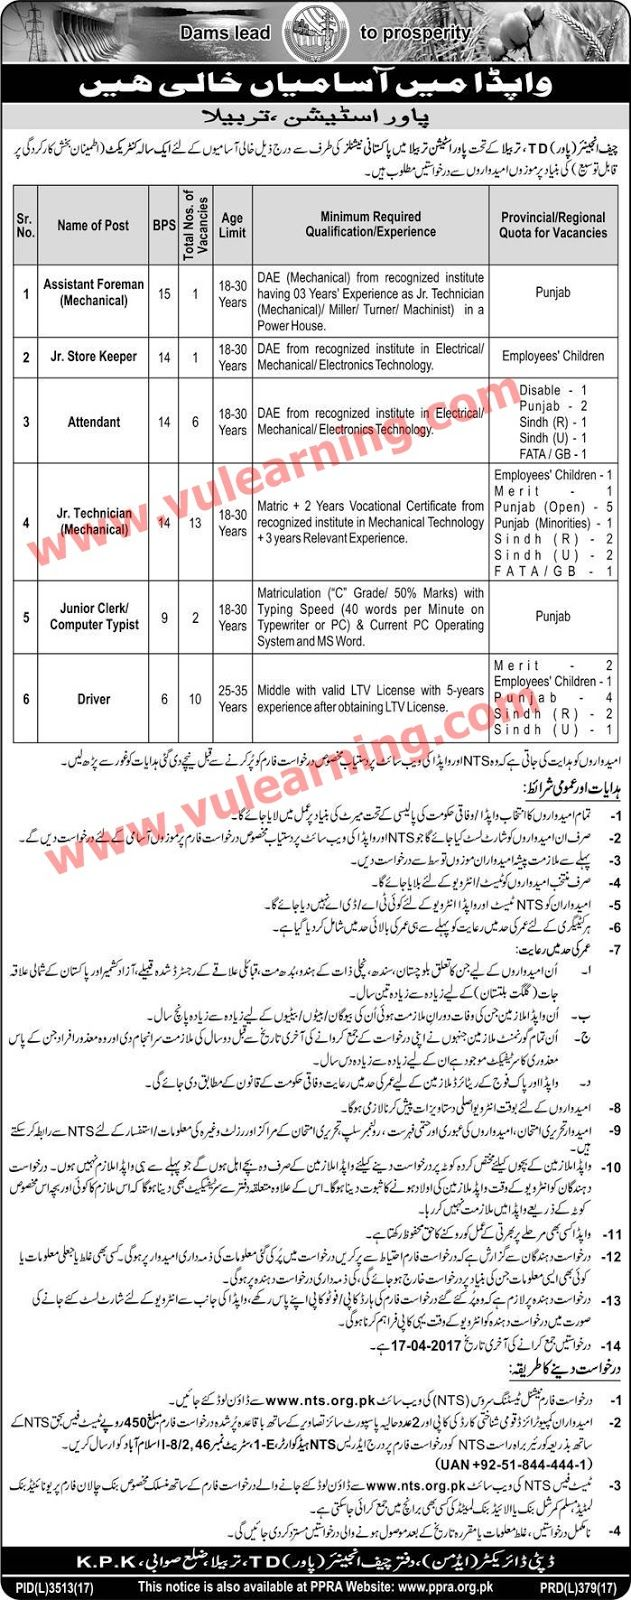 #  Title  Details  1  Jobs Location  Pakistan  2  Government / Private  Government  3  FPSC / PPSC / NTS / Others  NTS  4  Published Date  02 Apr 2017 Sunday  5  Last Date to Apply  17 Apr 2017 Monday  6  Newspaper Name  Express  WAPDA Power Station Tarbela Jobs 2017 NTS Application Form Latest  Vacancies / Positions:-  1 Assistant Foreman (Mechanical) (BPS-15)  1 Junior Store Keeper (BPS-14)  6 Attendant (BPS-14)  13 Junior Technician (Mechanical)(BPS-14)  2 Junior Clerk / Computer…